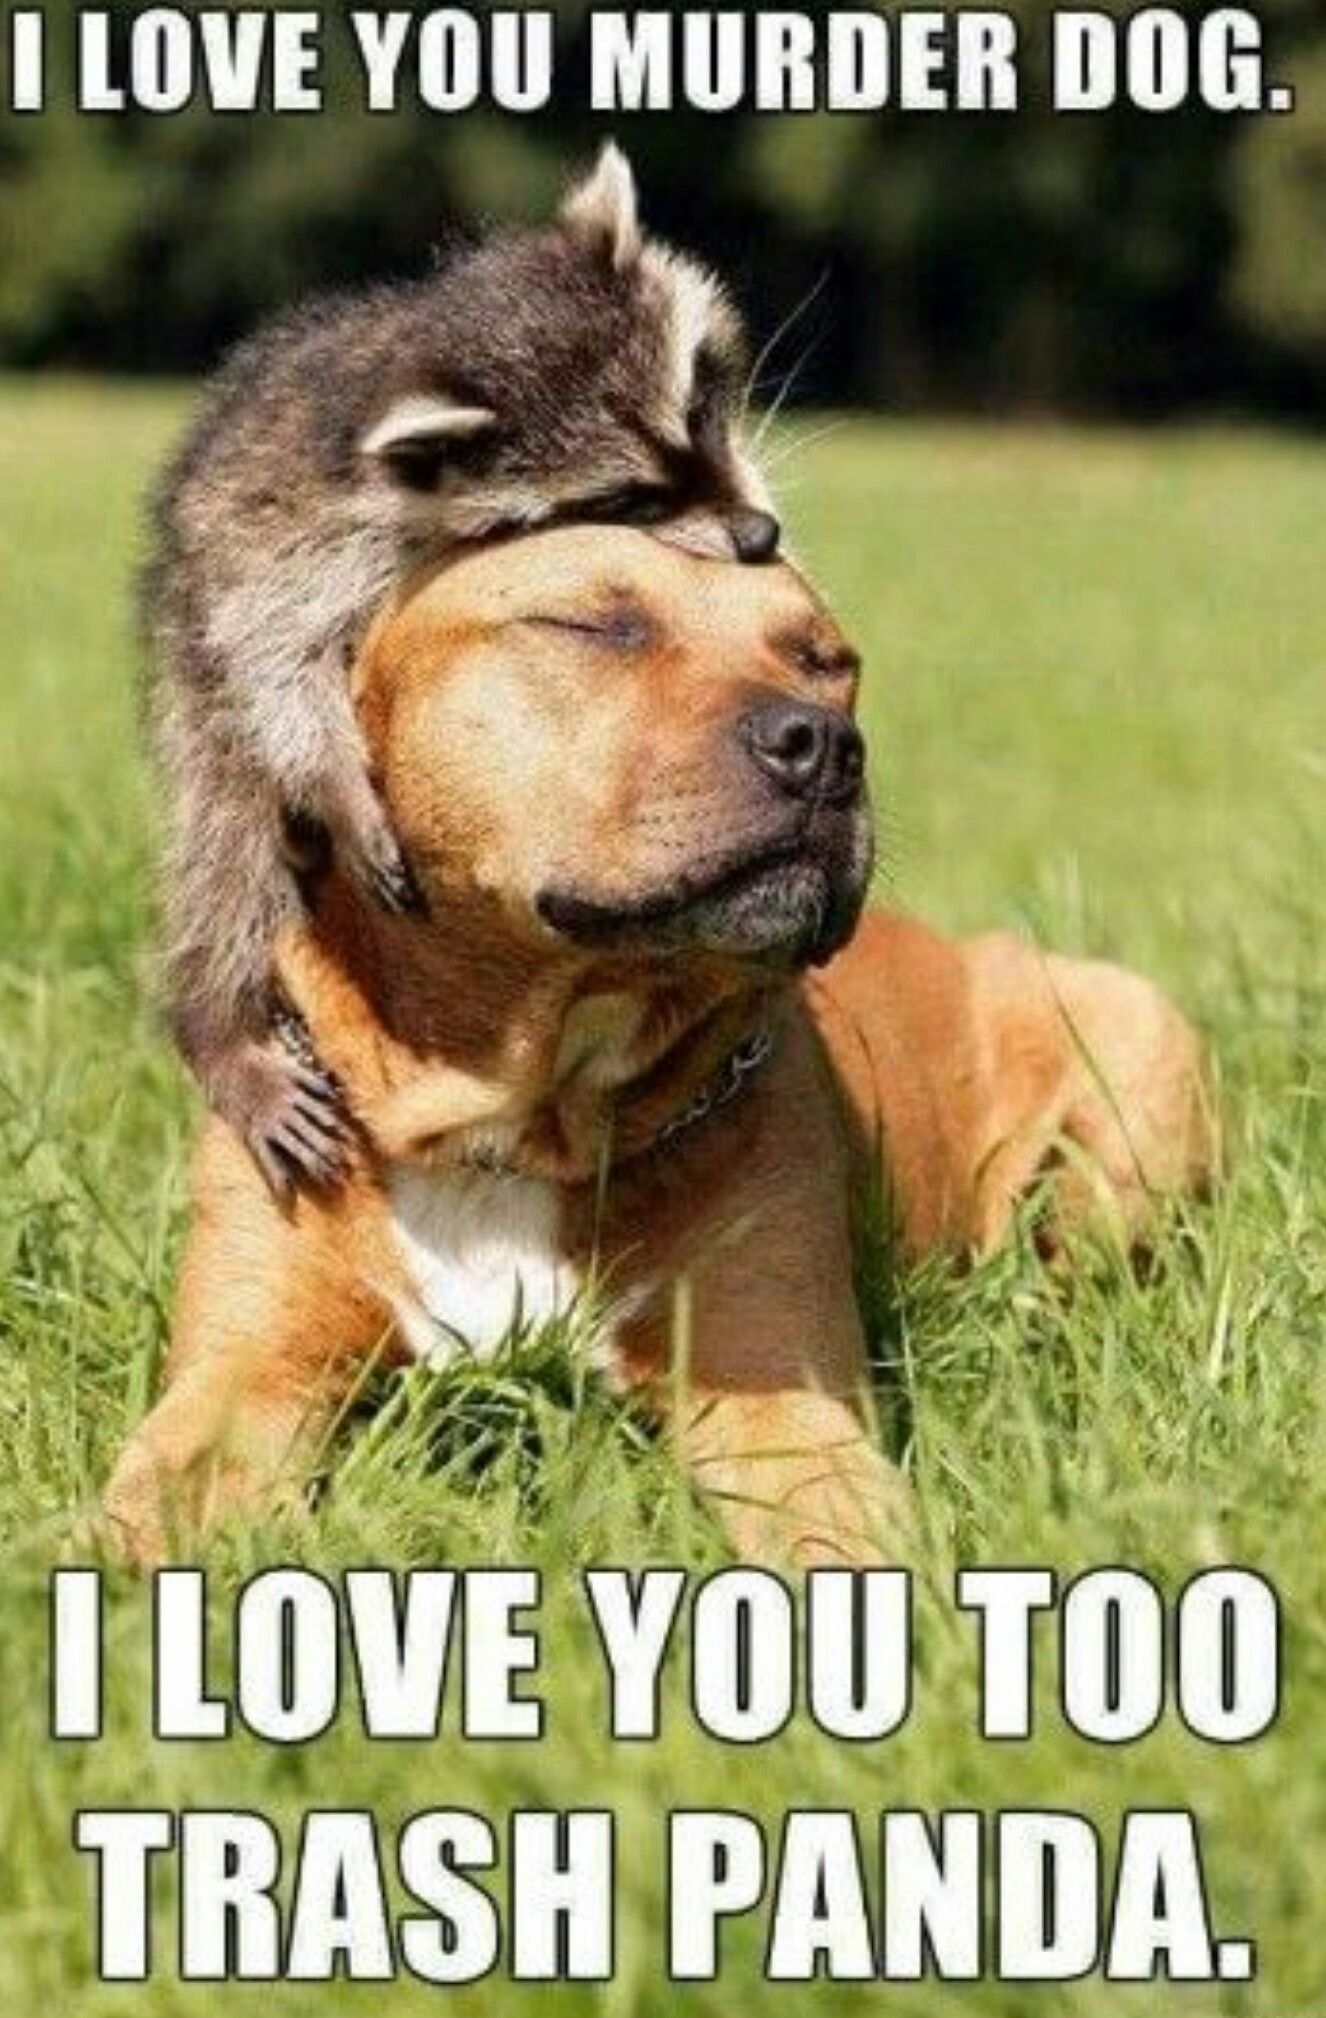 I love you murder dog. I love you too trash panda.